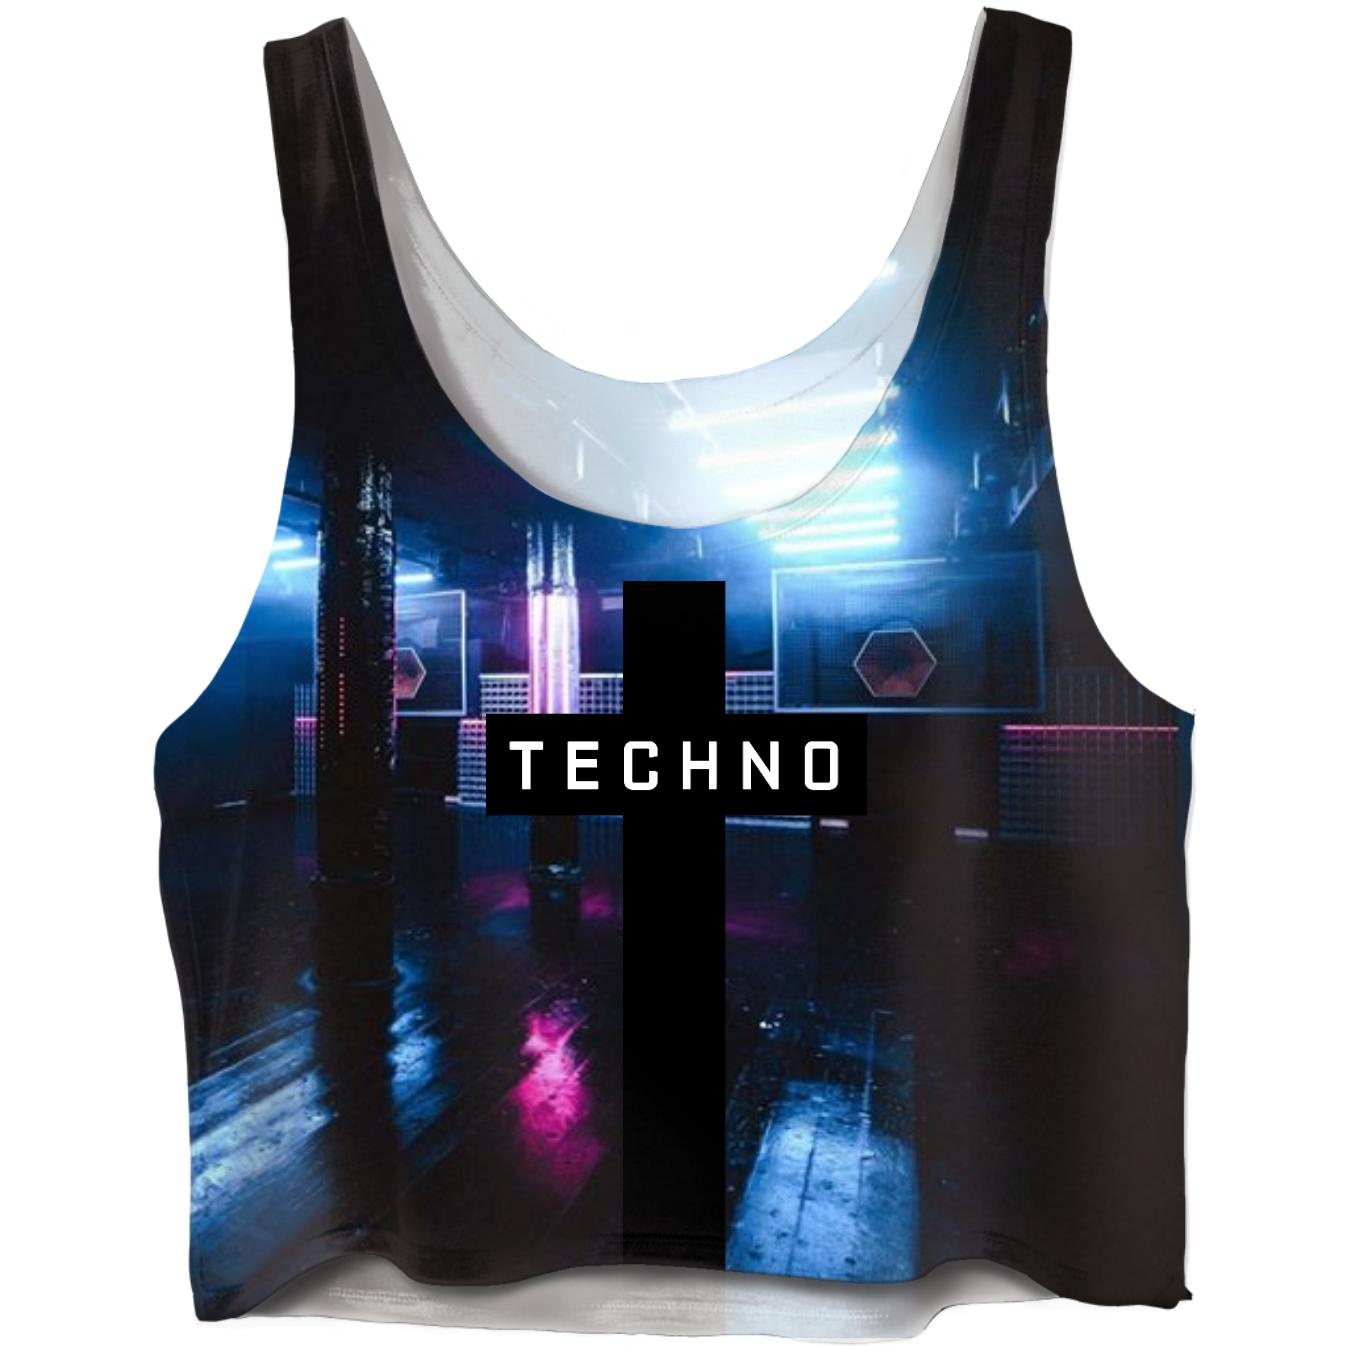 TECHNO Club CropTop - Rave On!® All-Over-360Print Crop Tops X-Small - Rave On!® der Club & Techno Szene Shop für Coole Junge Mode Streetwear Style & Fashion Outfits + Sexy Festival 420 Stuff